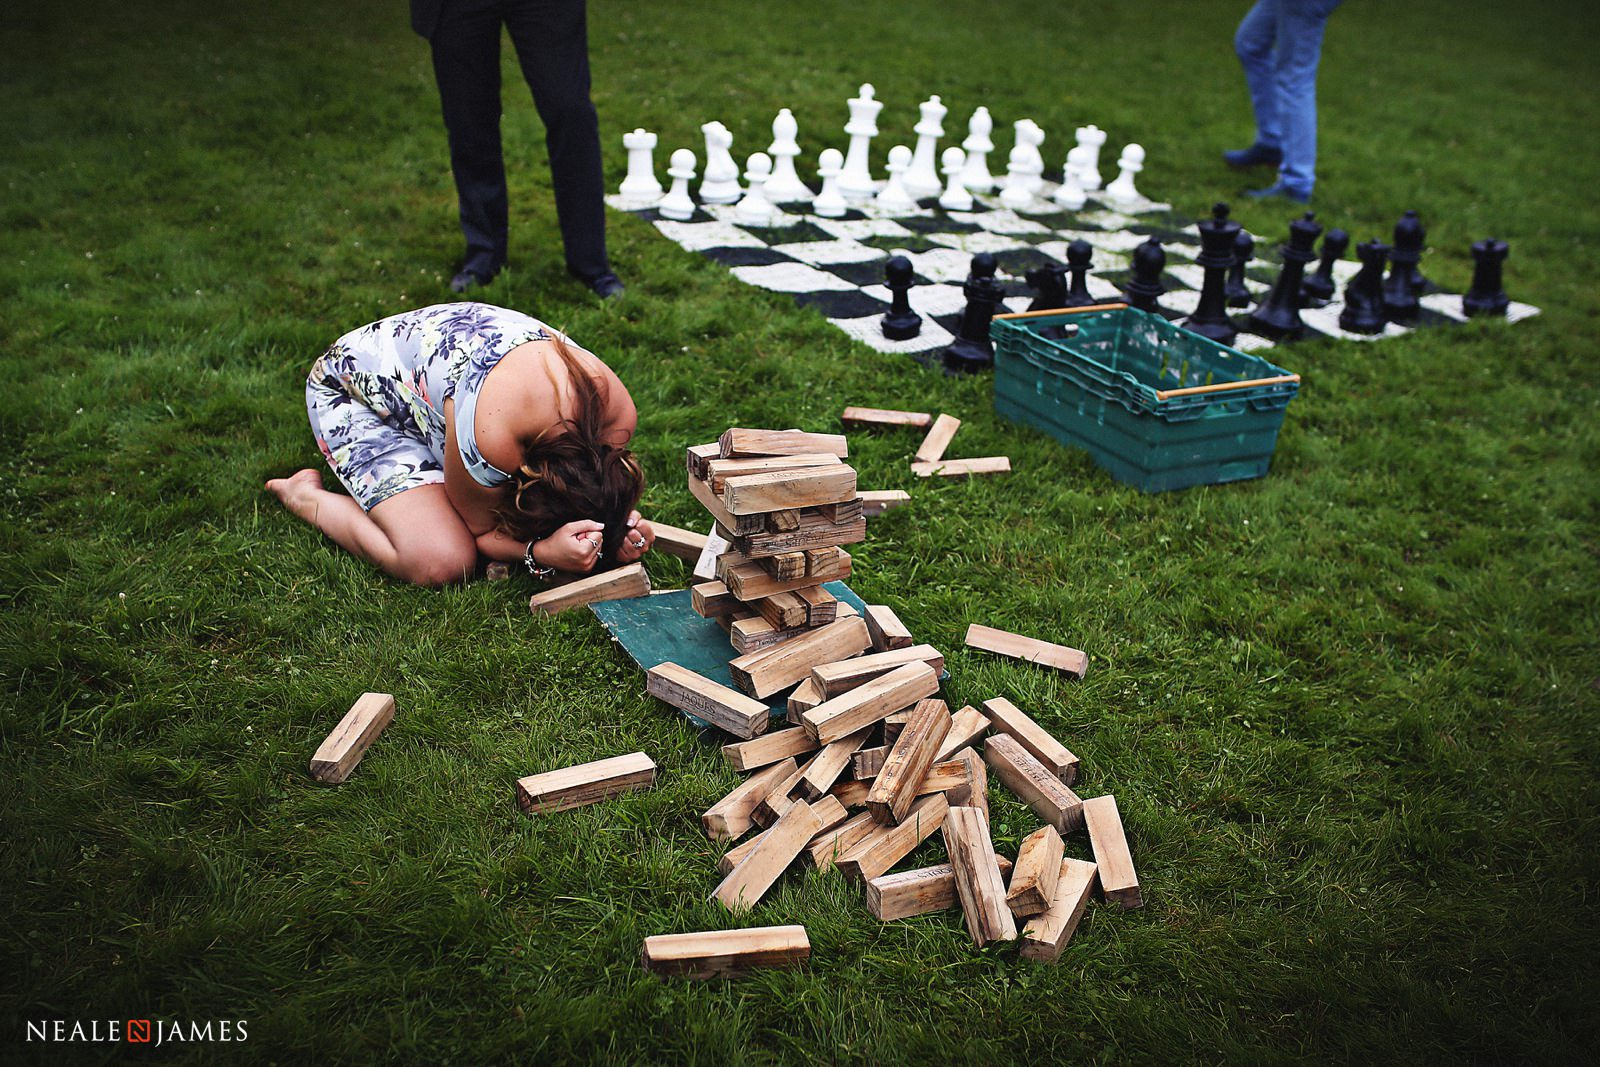 Colour photograph of Jenga being played at a wedding